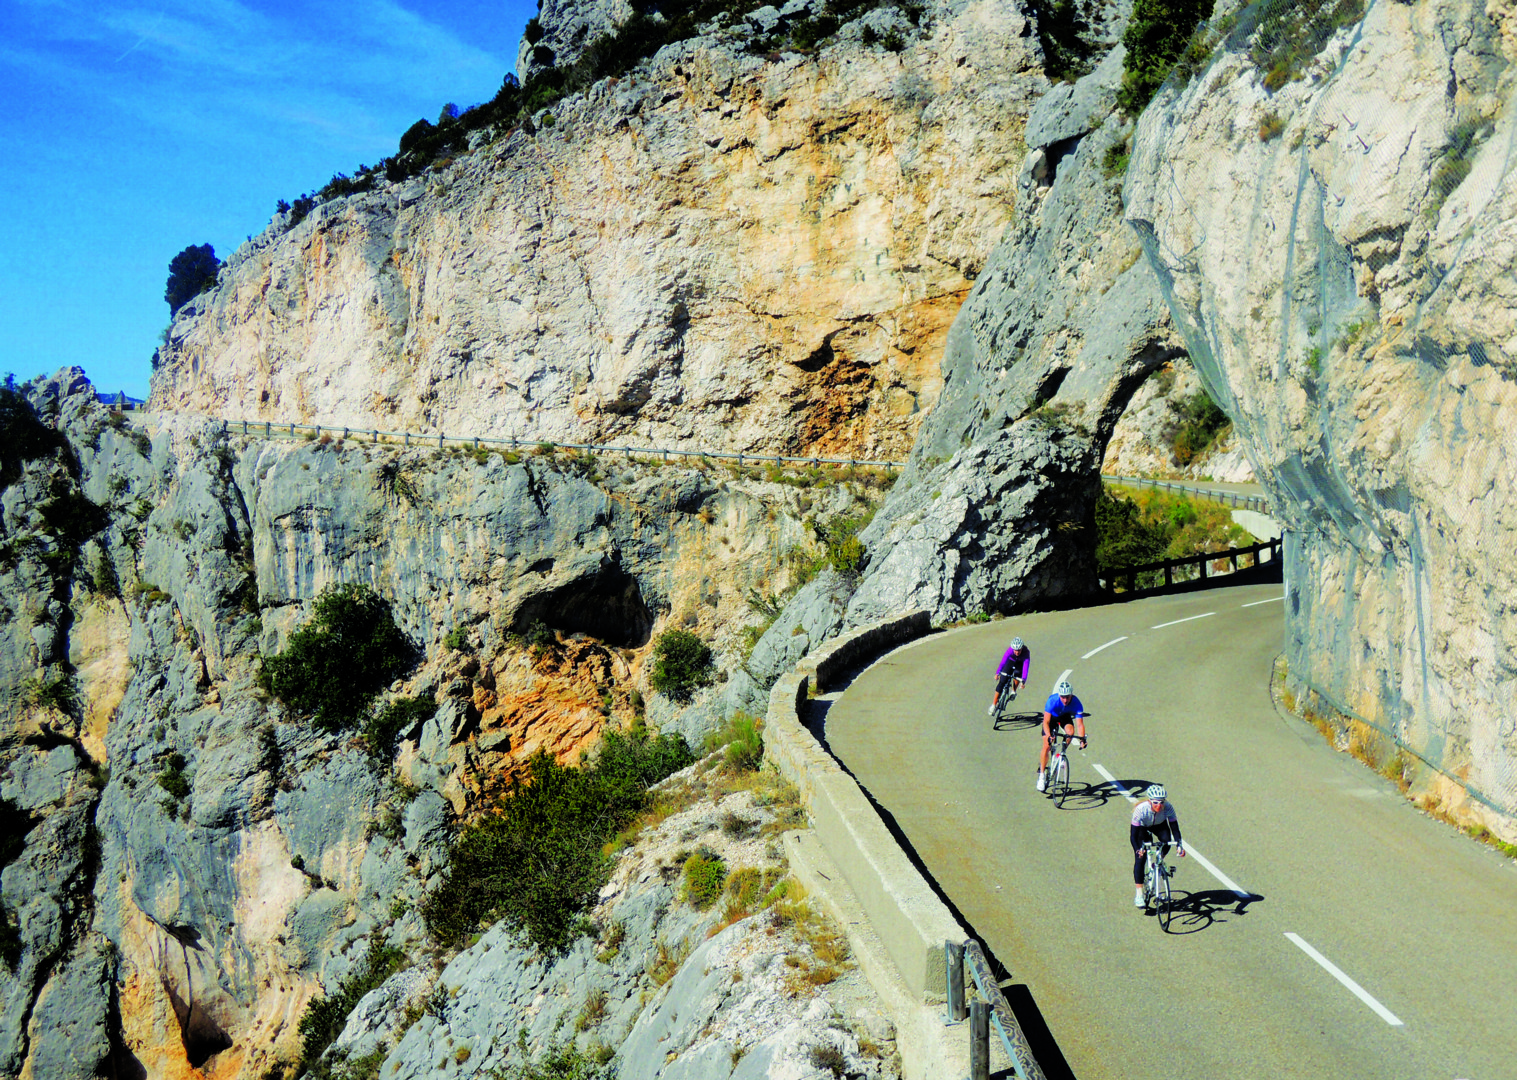 guided-road-cycling-holiday-explorer.jpg - France - St Malo to Nice Classic (15 days) - Guided Road Cycling Holiday - Road Cycling